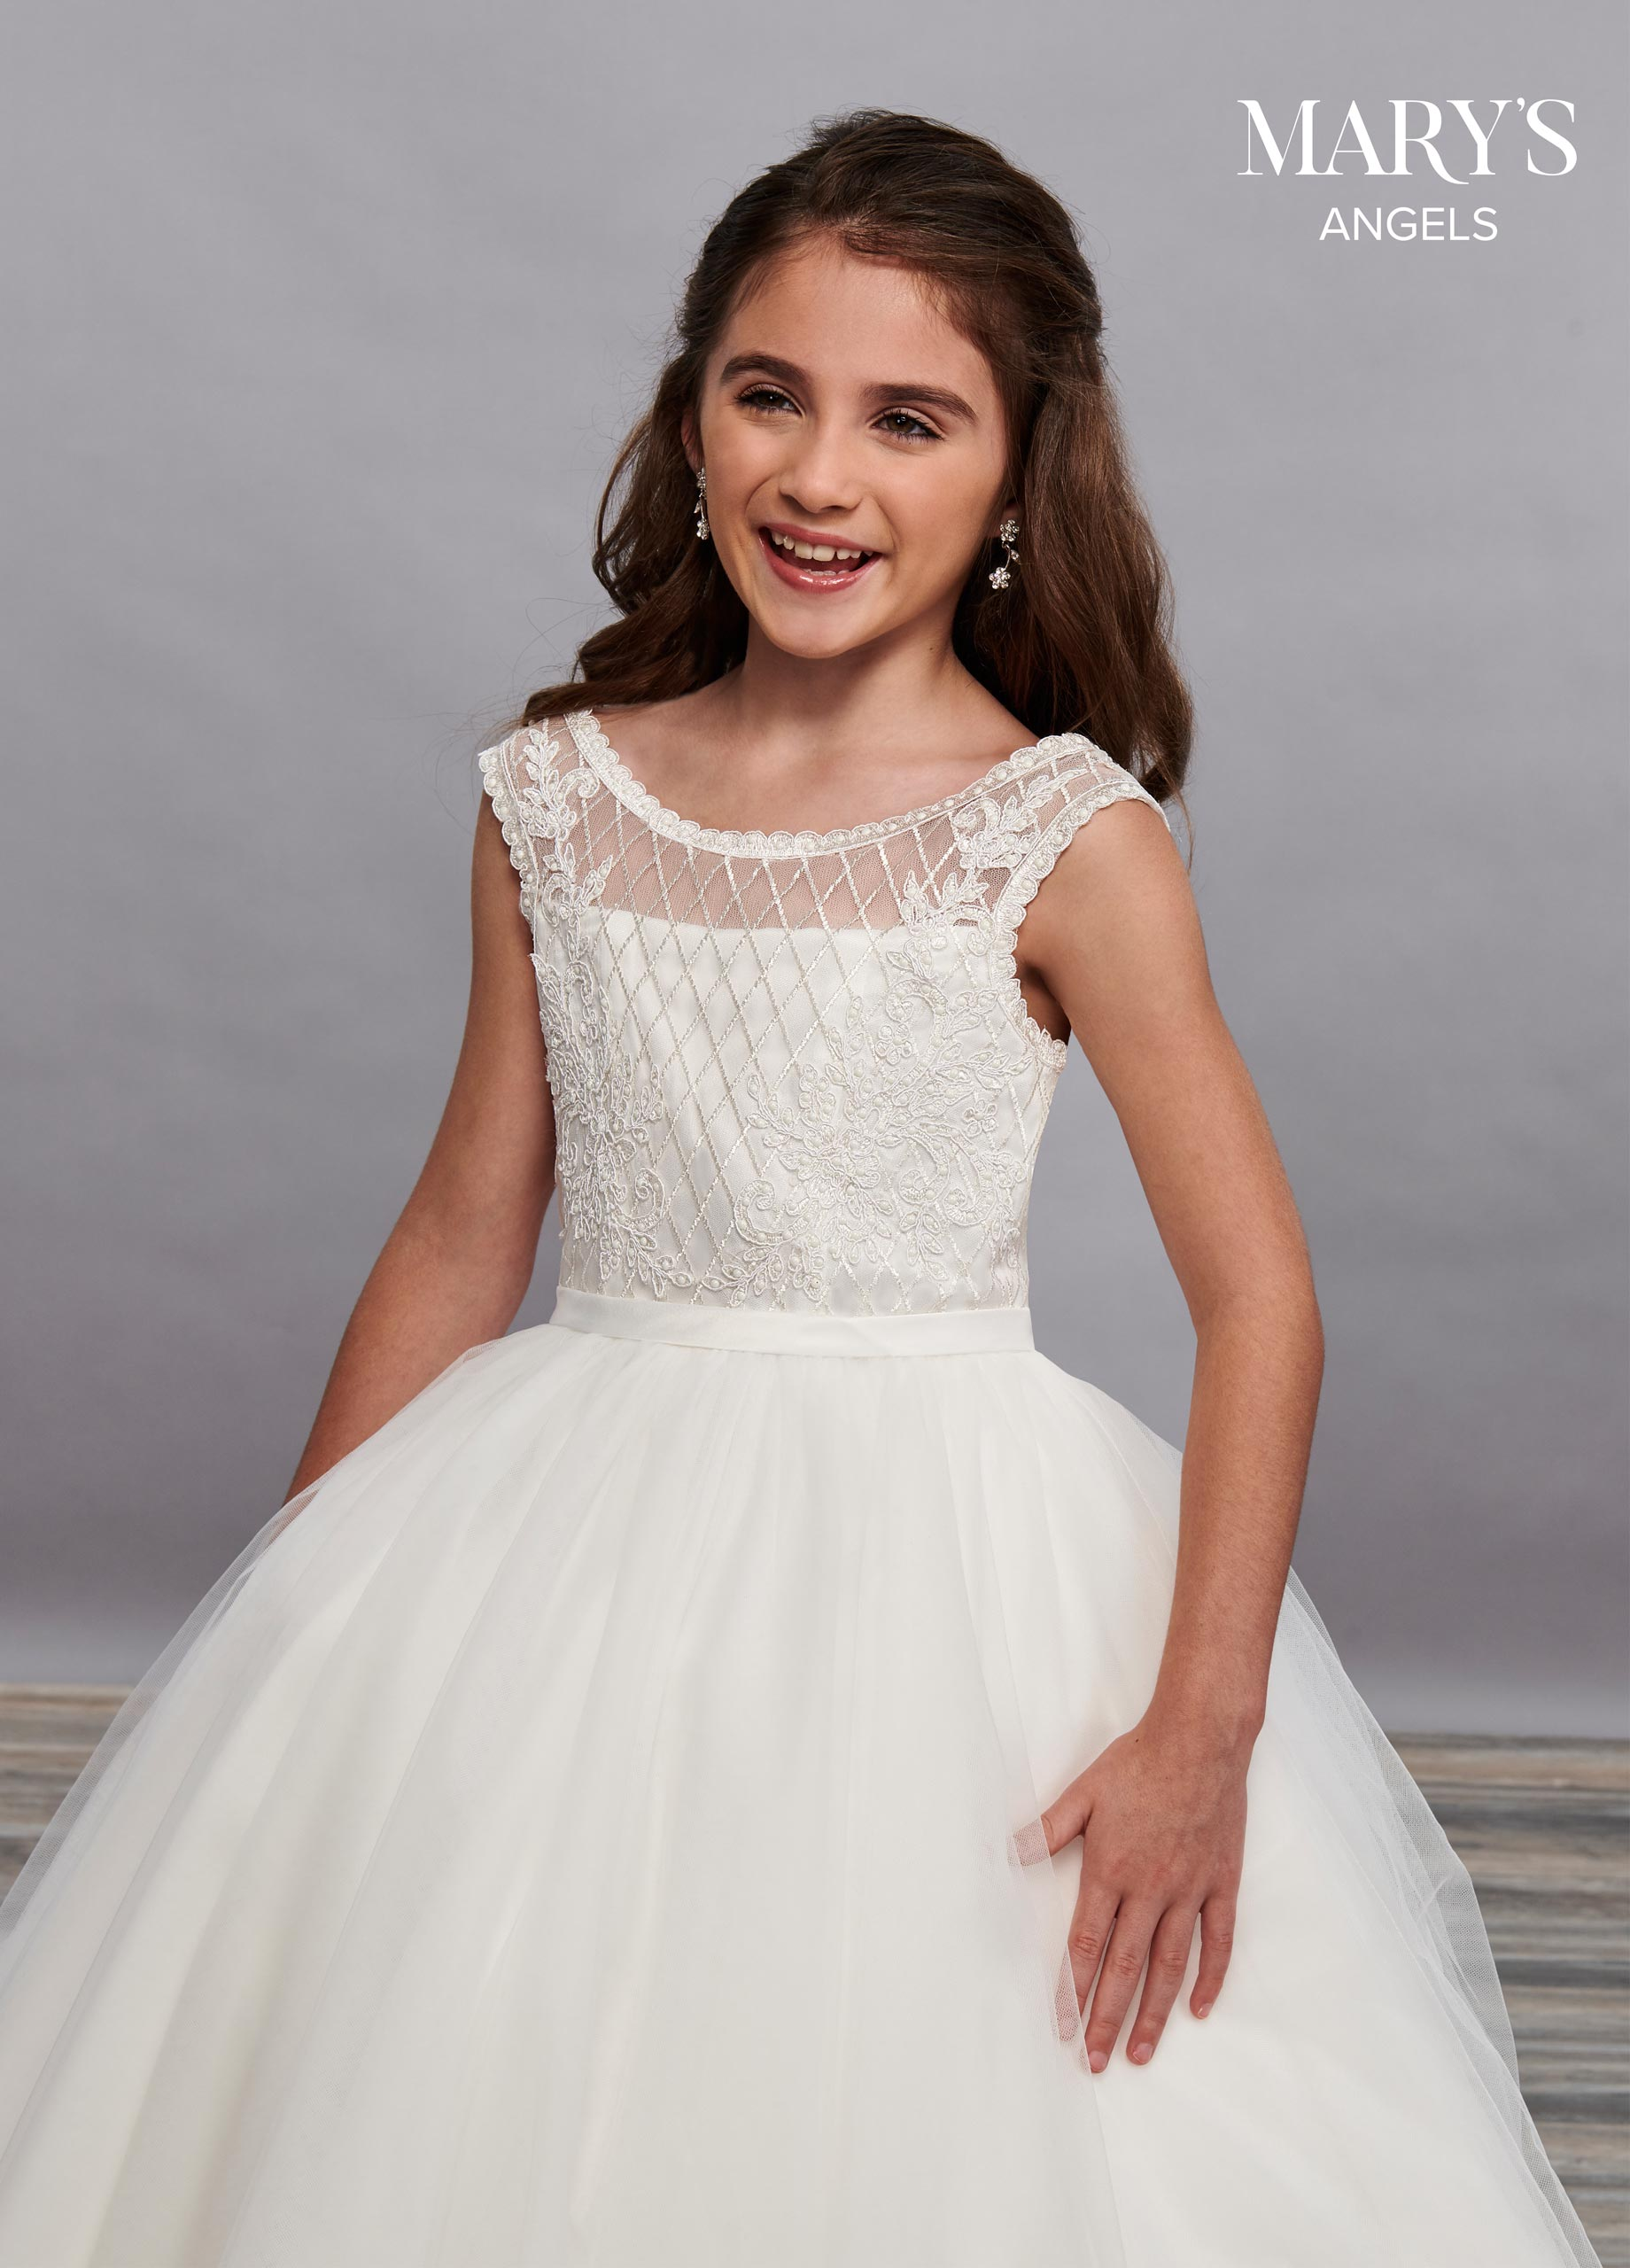 Angel Flower Girl Dresses | Mary's Angels | Style - MB9061